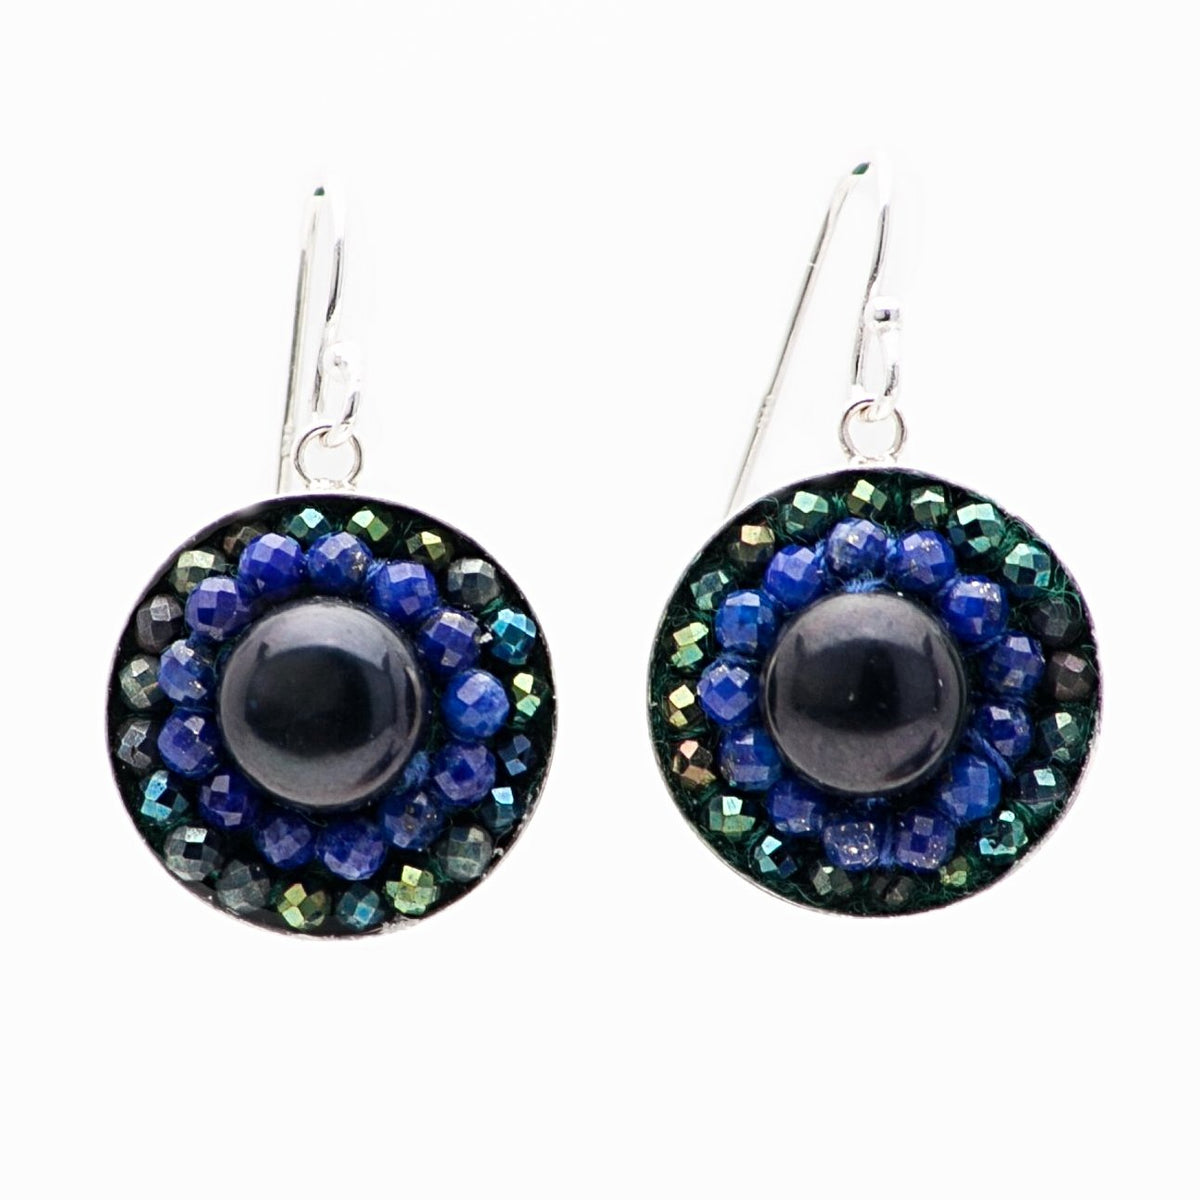 Iconic Pearl, Lapis Lazuli, and Pyrite Mosaic Earrings